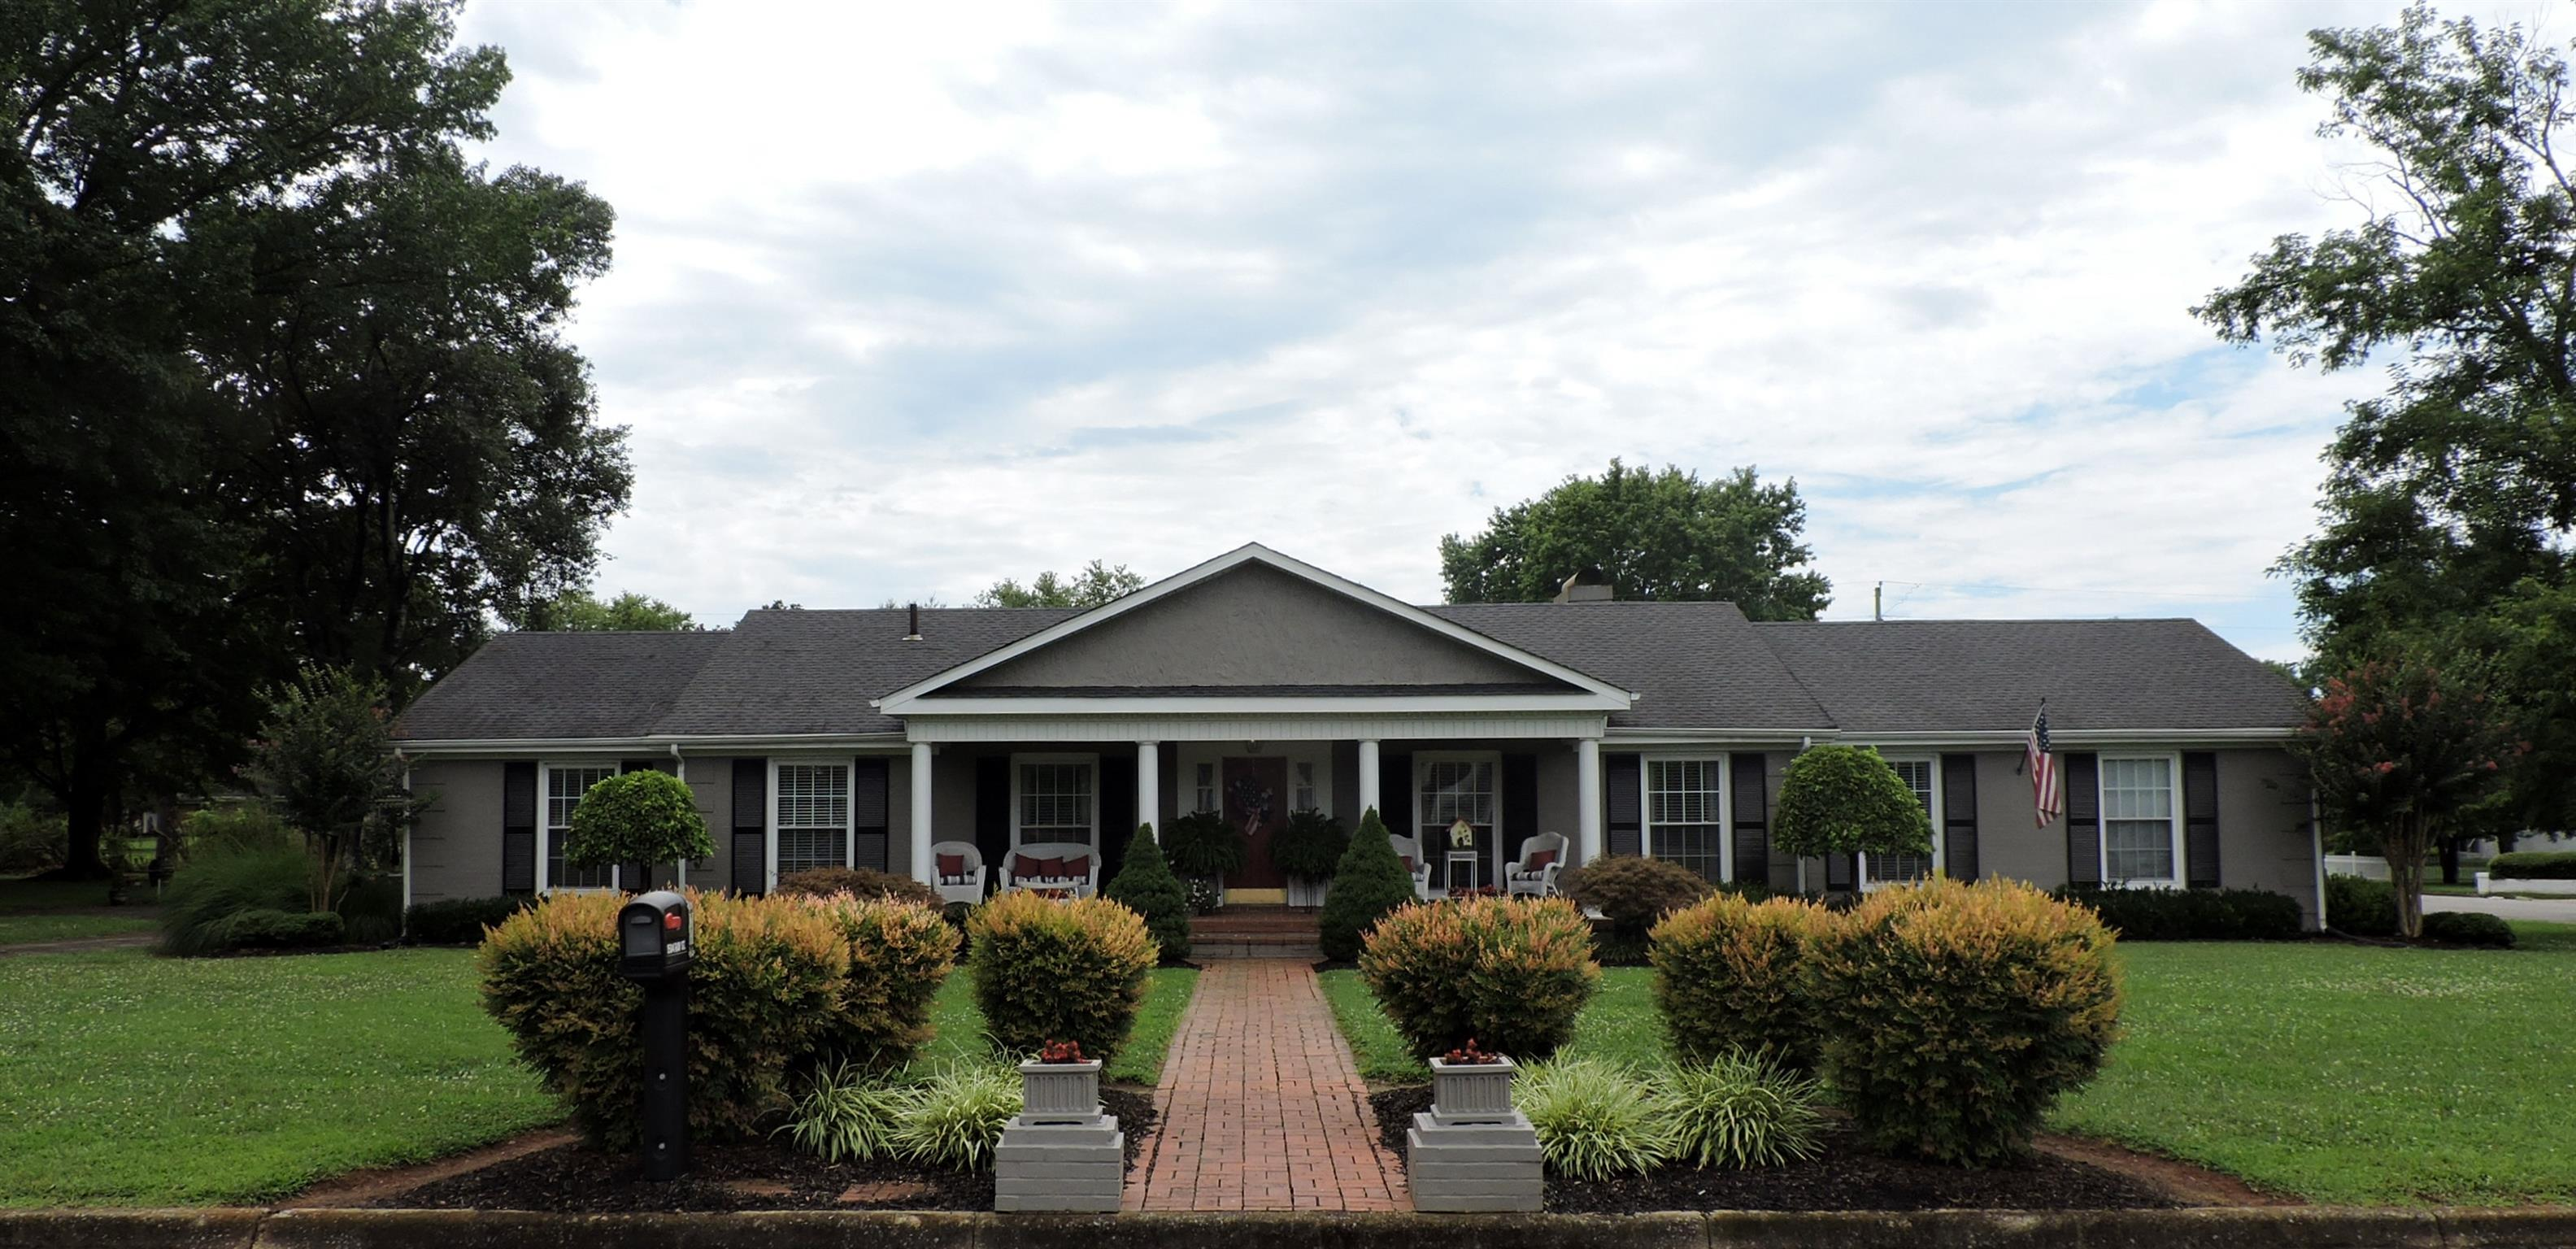 1504 Ray St, Lawrenceburg, TN 38464 - Lawrenceburg, TN real estate listing